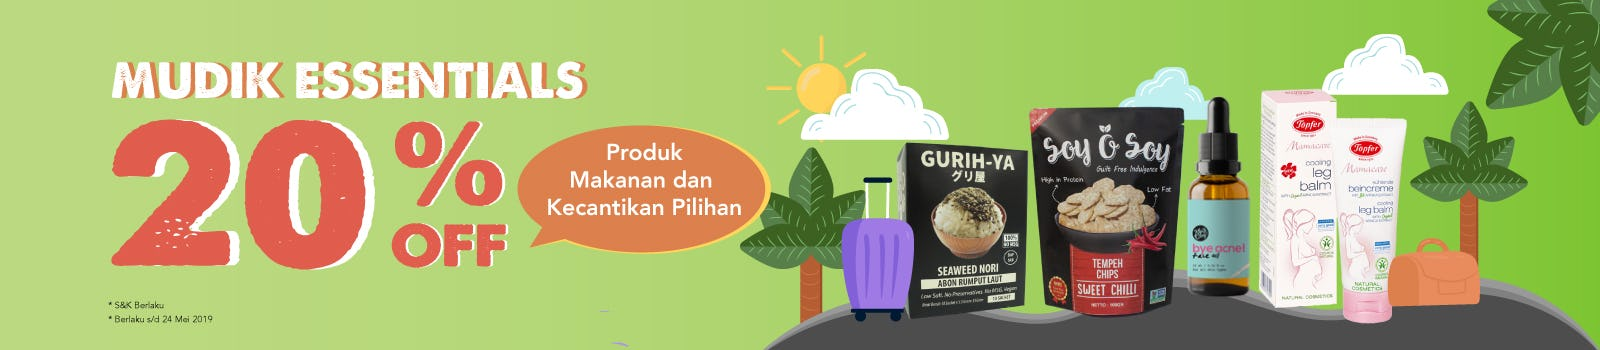 Mudik Essentials 20% OFF